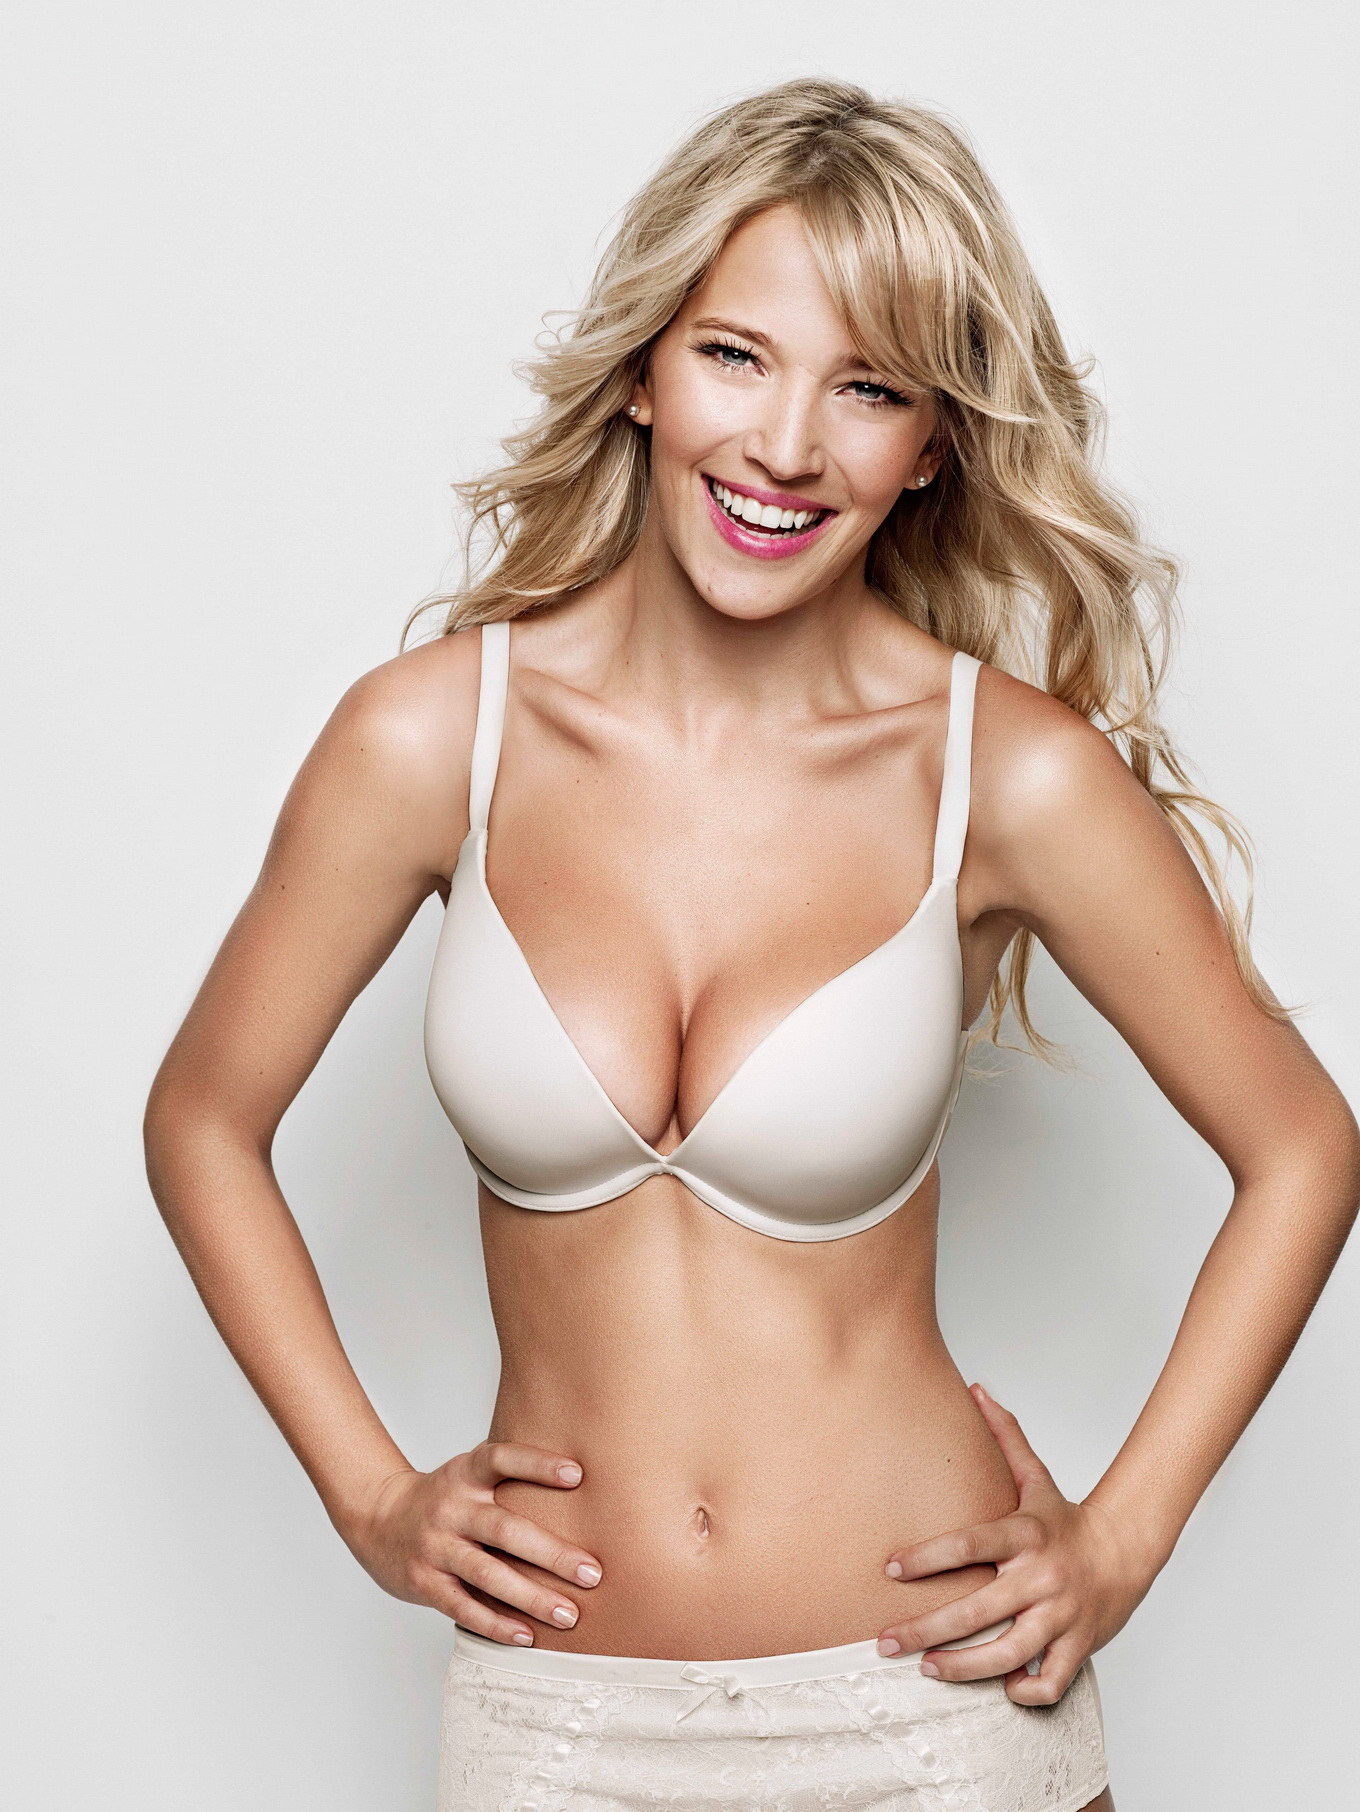 luisana lopilato busty in very sexy ultimo lingerie